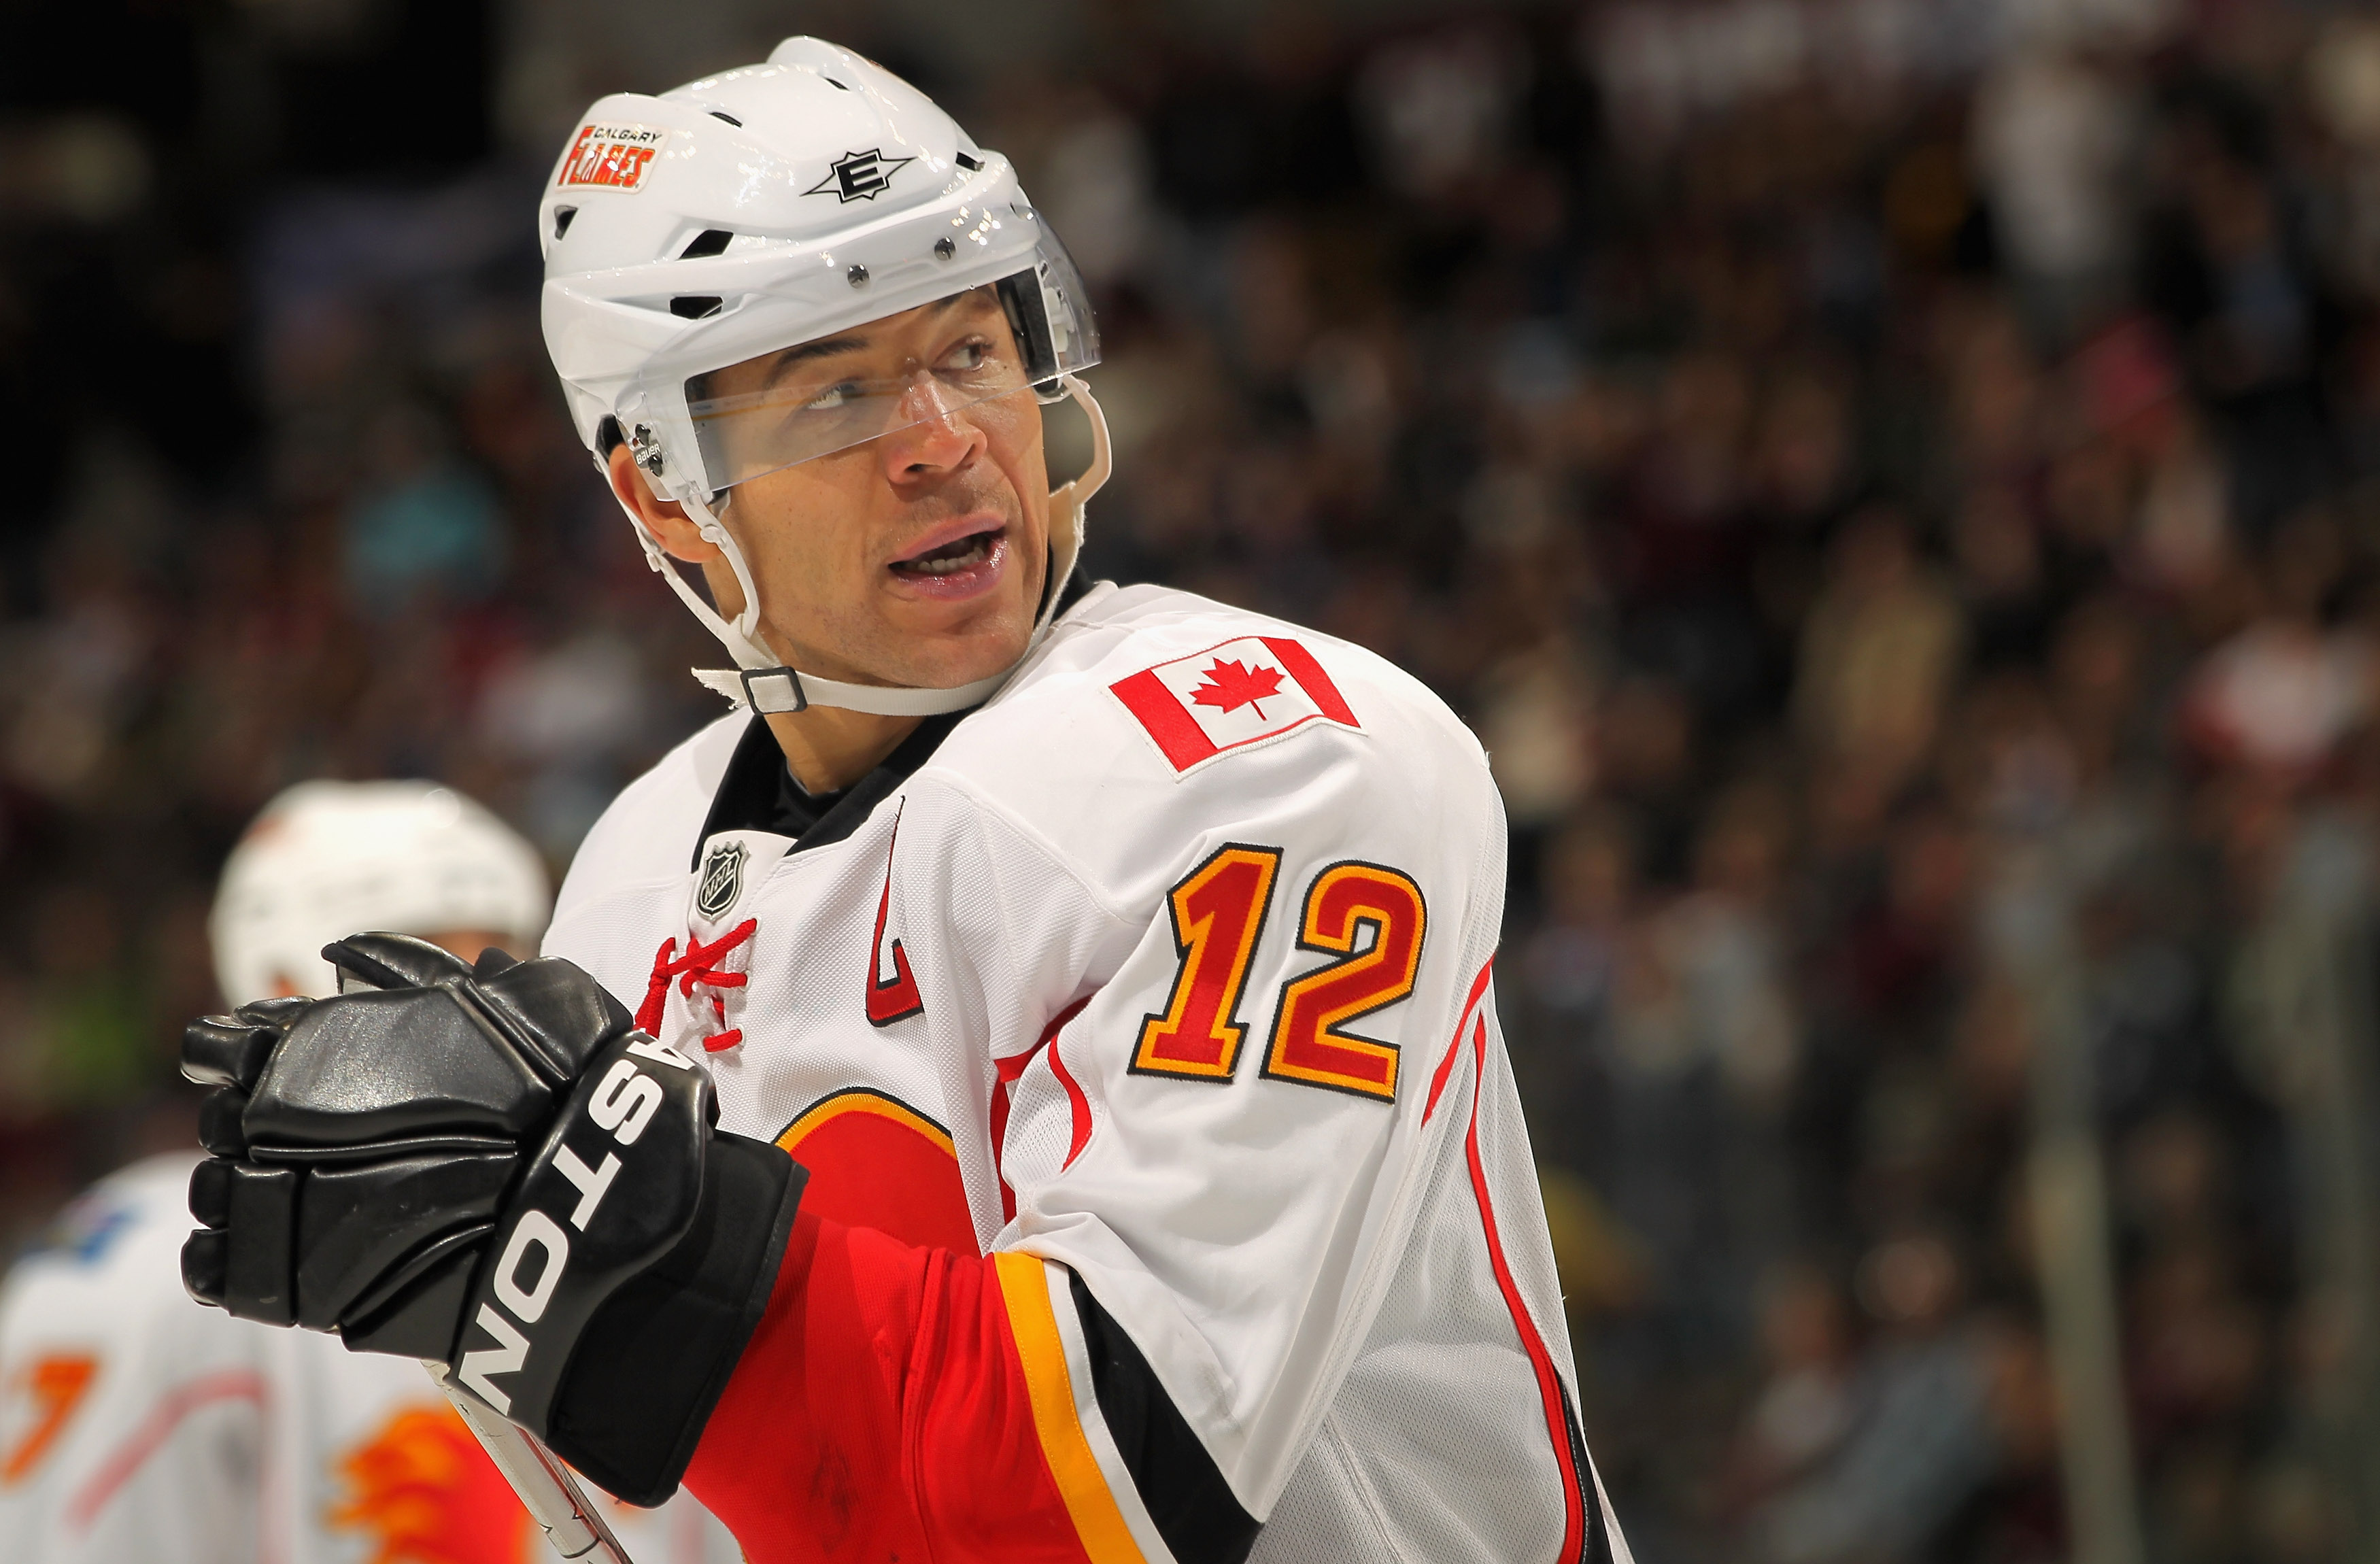 DENVER - NOVEMBER 09:  Jarome Iginla #12 of the Calgary Flames skates against the Colorado Avalanche at the Pepsi Center on November 9, 2010 in Denver, Colorado. The Flames defeated the Avalanche 4-2.  (Photo by Doug Pensinger/Getty Images)